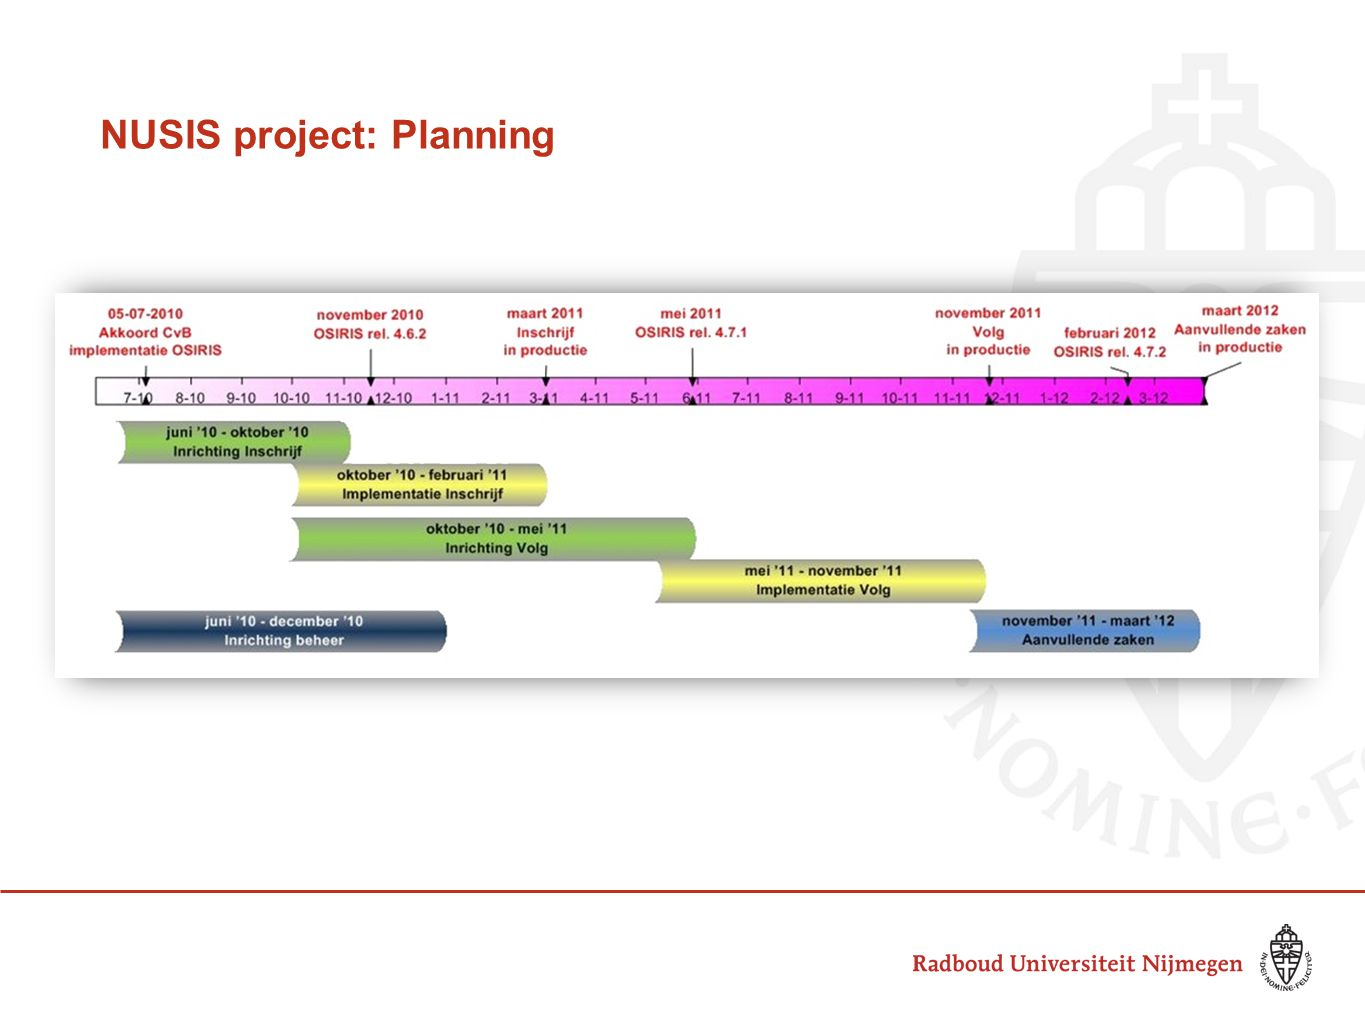 NUSIS project: Planning